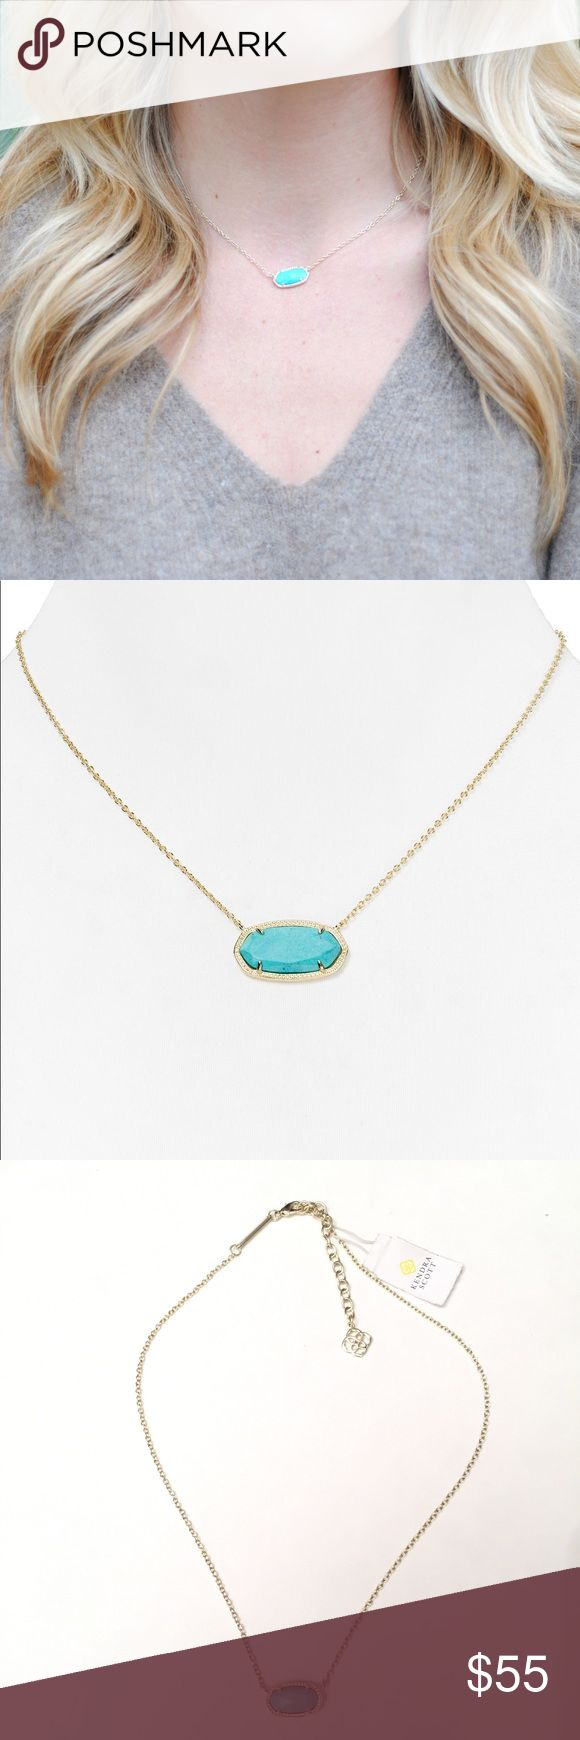 Kendra Scott Elsa Gold & Turquoise Necklace NWT New With Tags. Perfect summer necklace! Kendra Scott Jewelry Necklaces